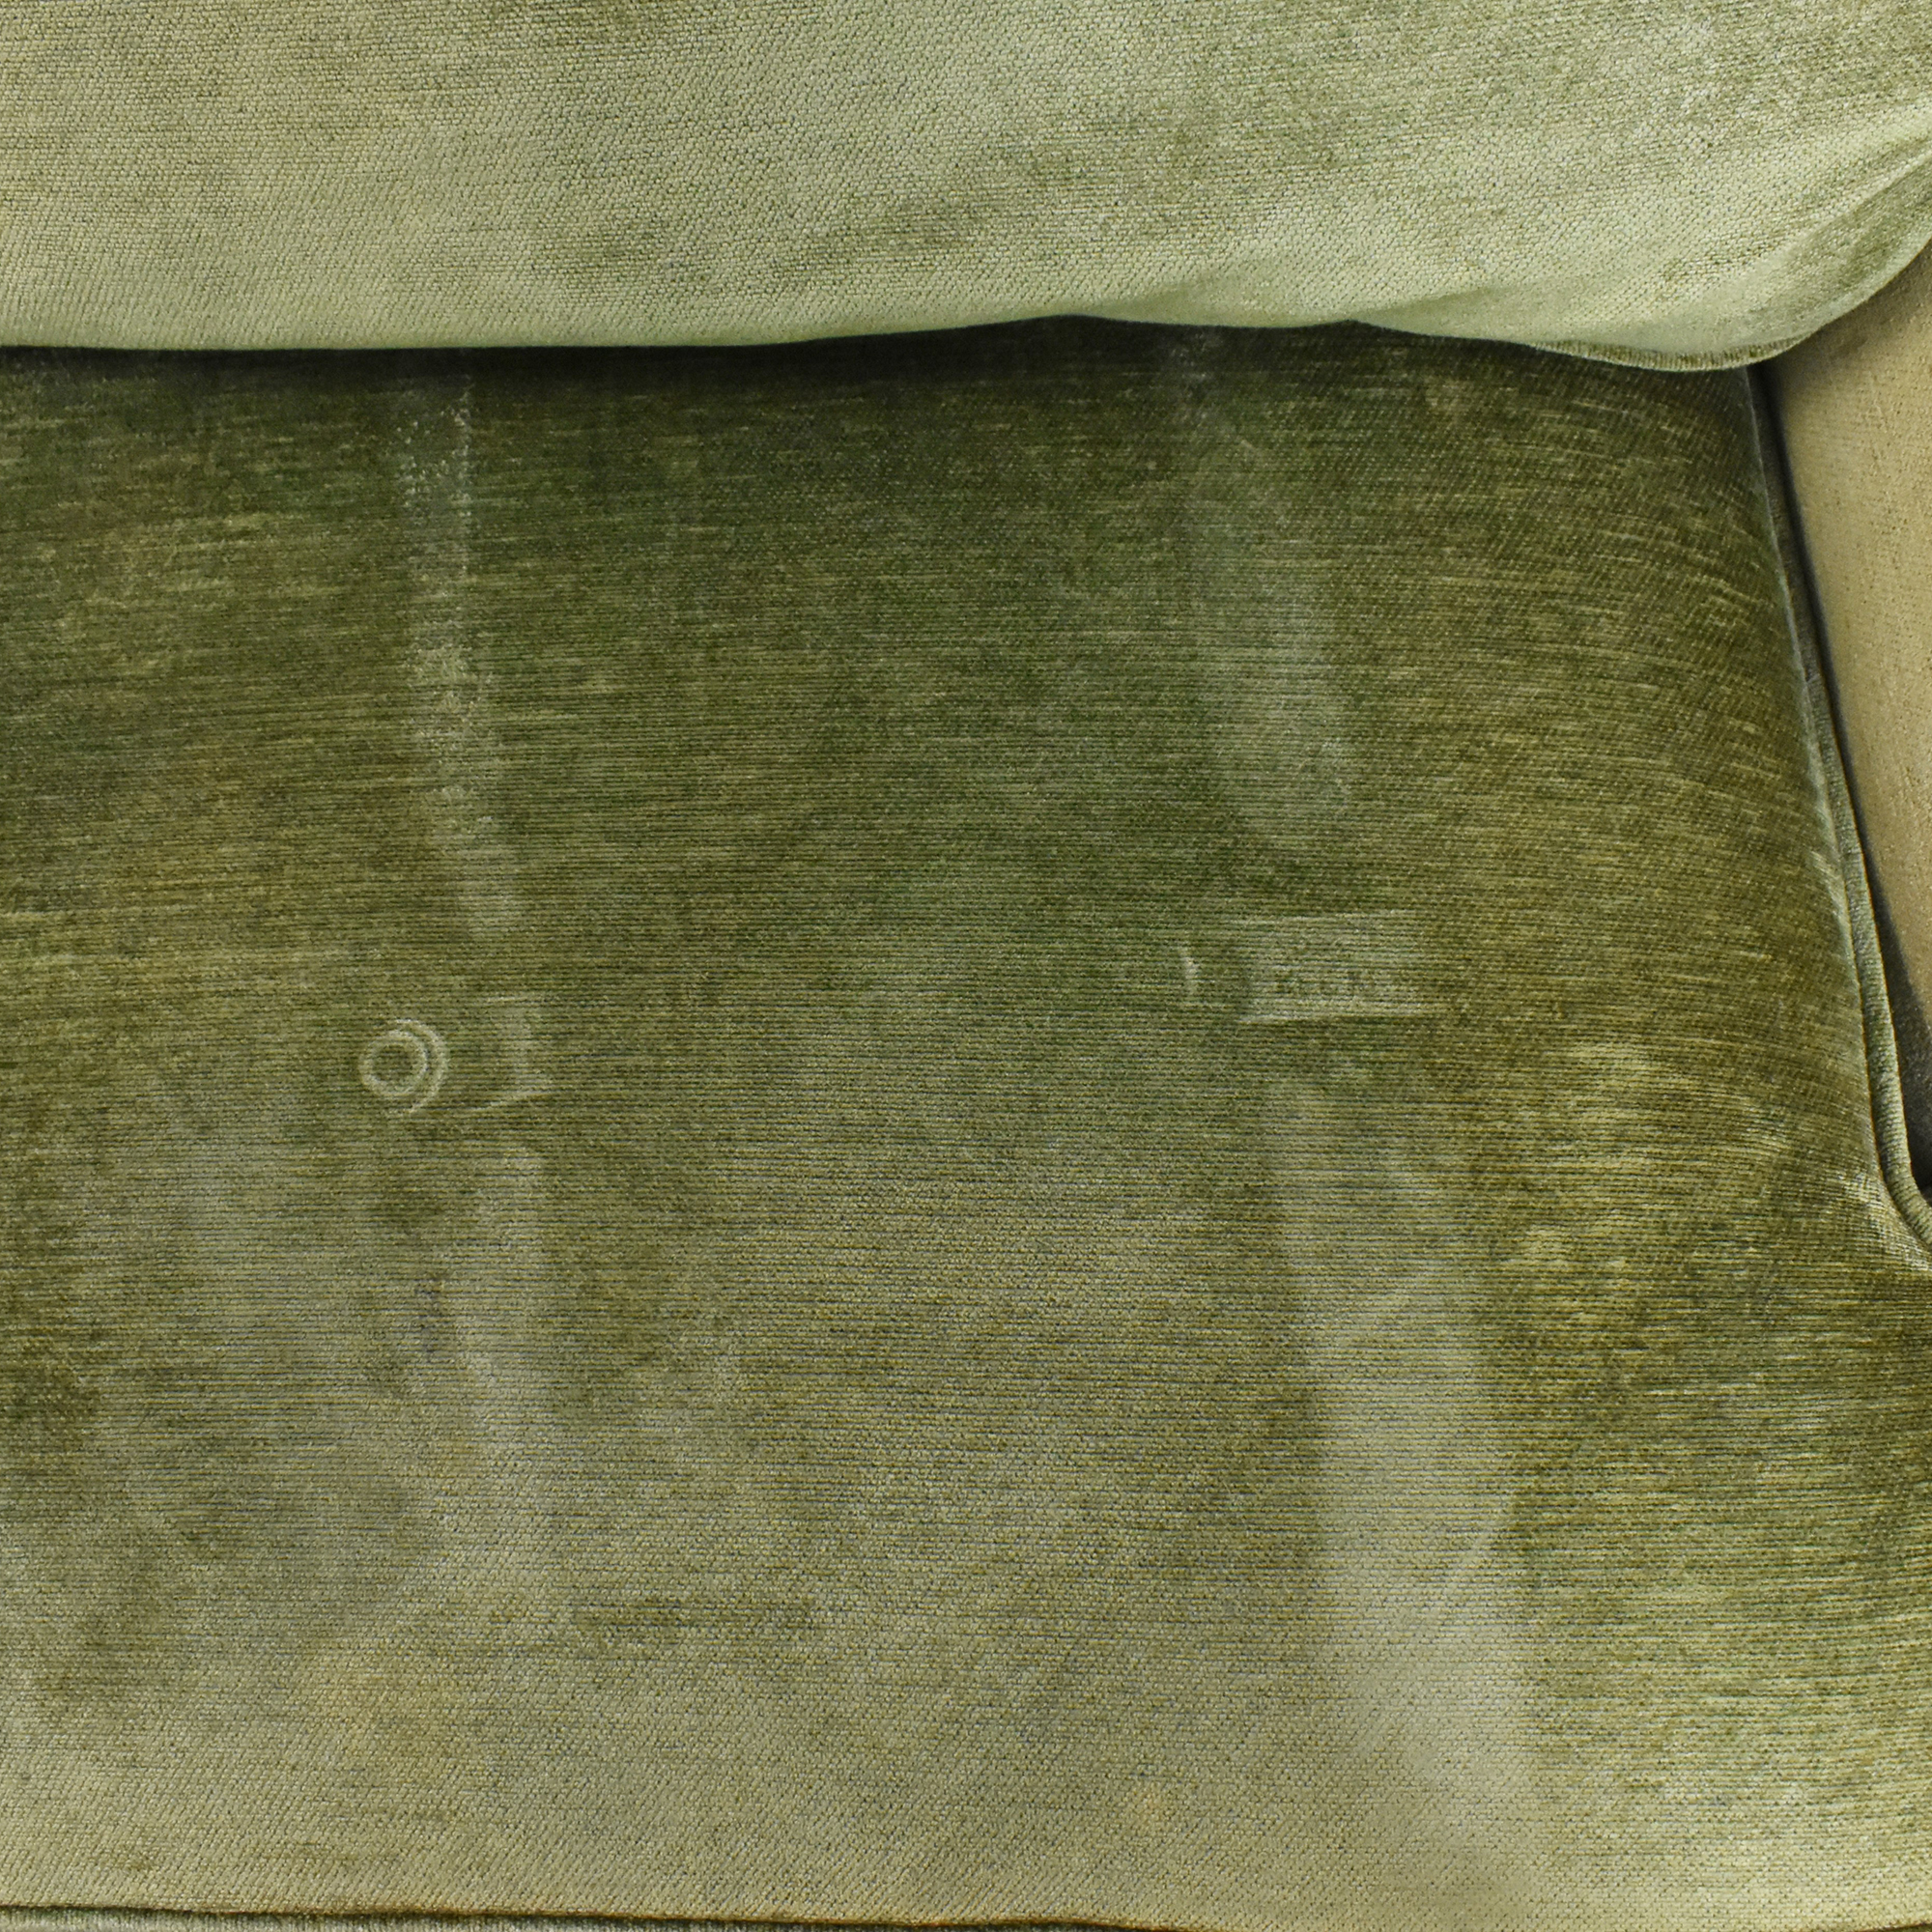 Hickory Springs Hickory Springs Two Cushion Sleeper Sofa used